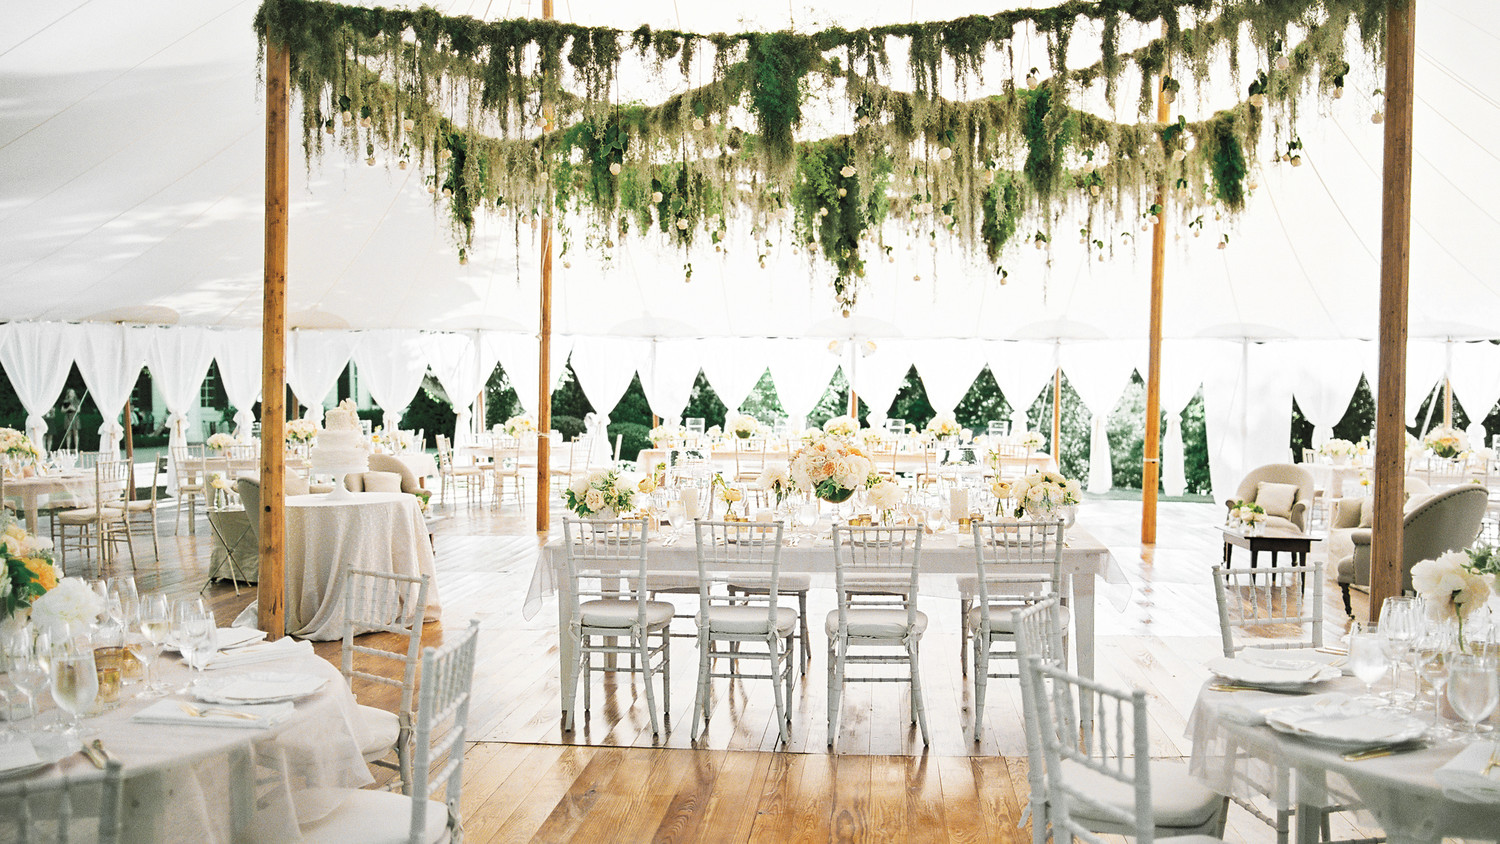 28 Tent Decorating Ideas That Will Upgrade Your Wedding Reception | Martha Stewart Weddings : decorating a tent for a wedding - memphite.com